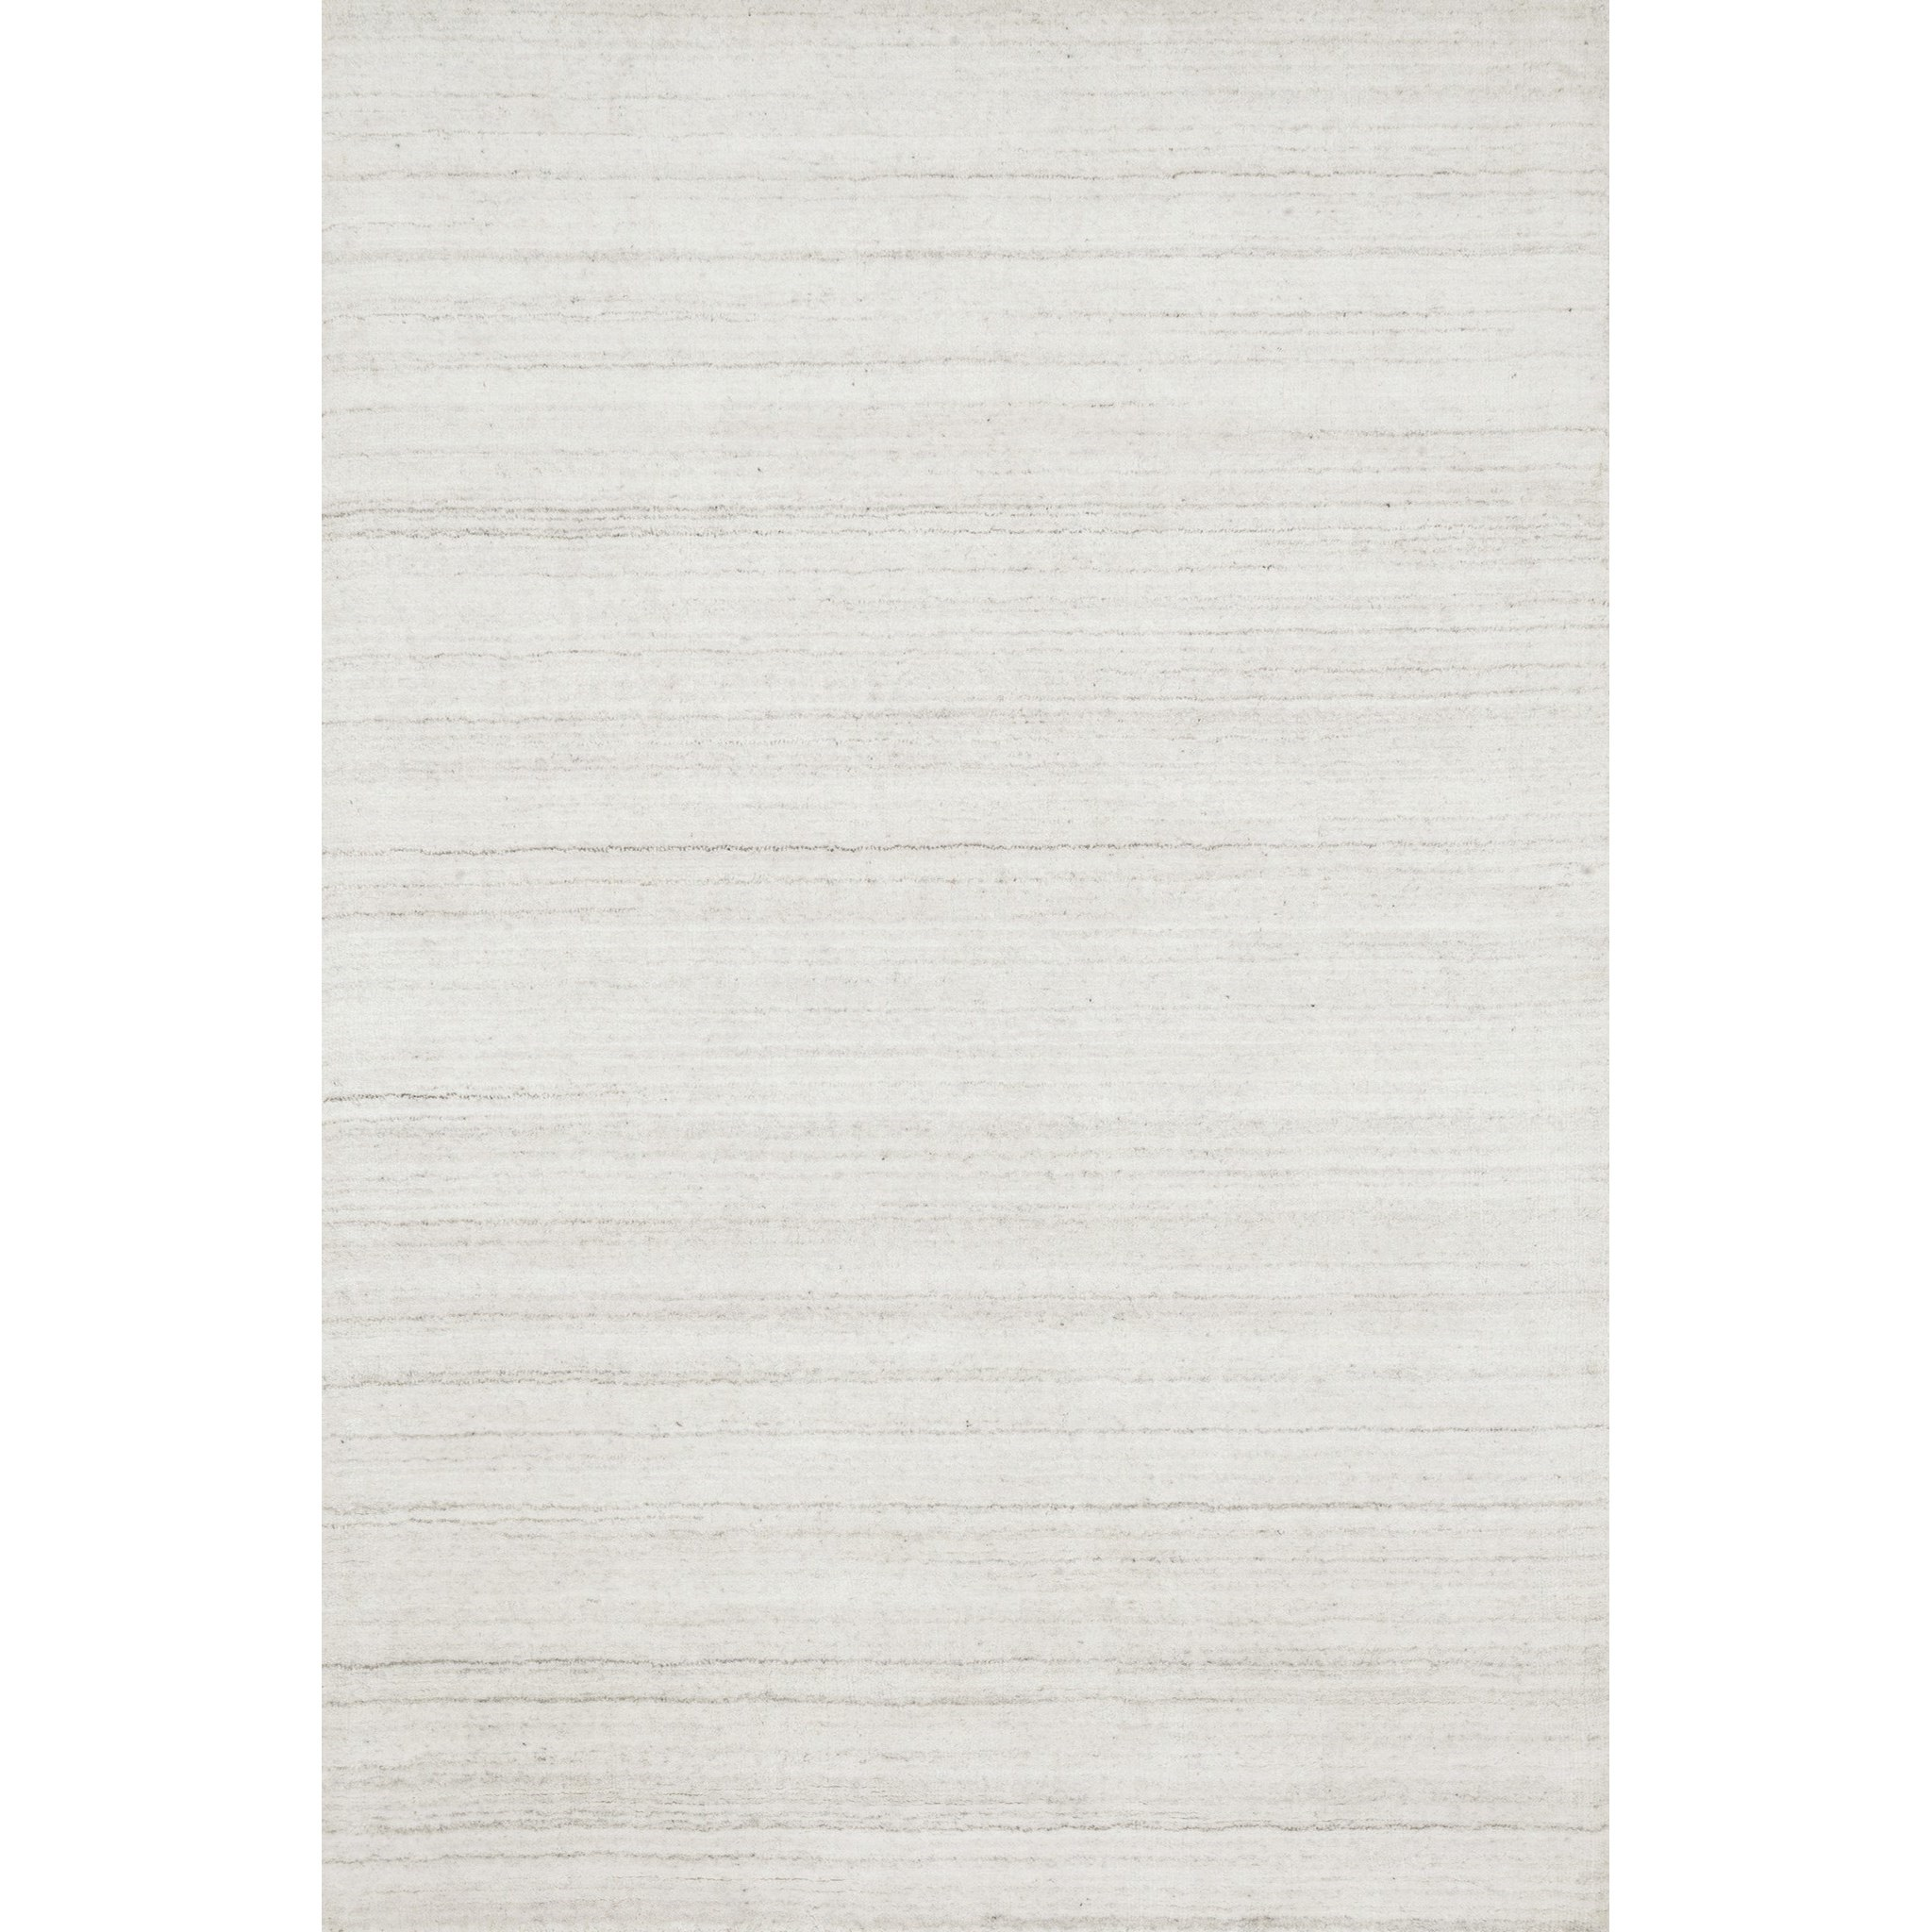 """Barkley 3'-6"""" x 5'-6"""" Area Rug by Loloi Rugs at Virginia Furniture Market"""